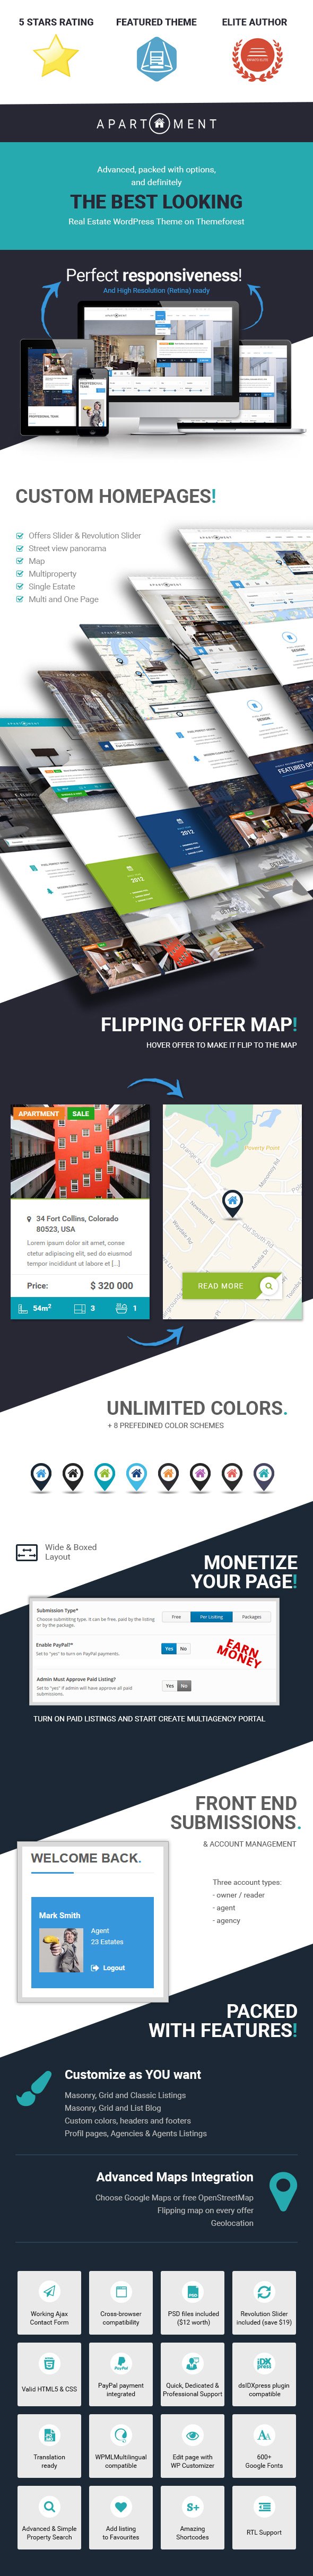 Apartment WP - Real Estate Responsive WordPress Theme for Agents, Portals, Single Property Sites - 1